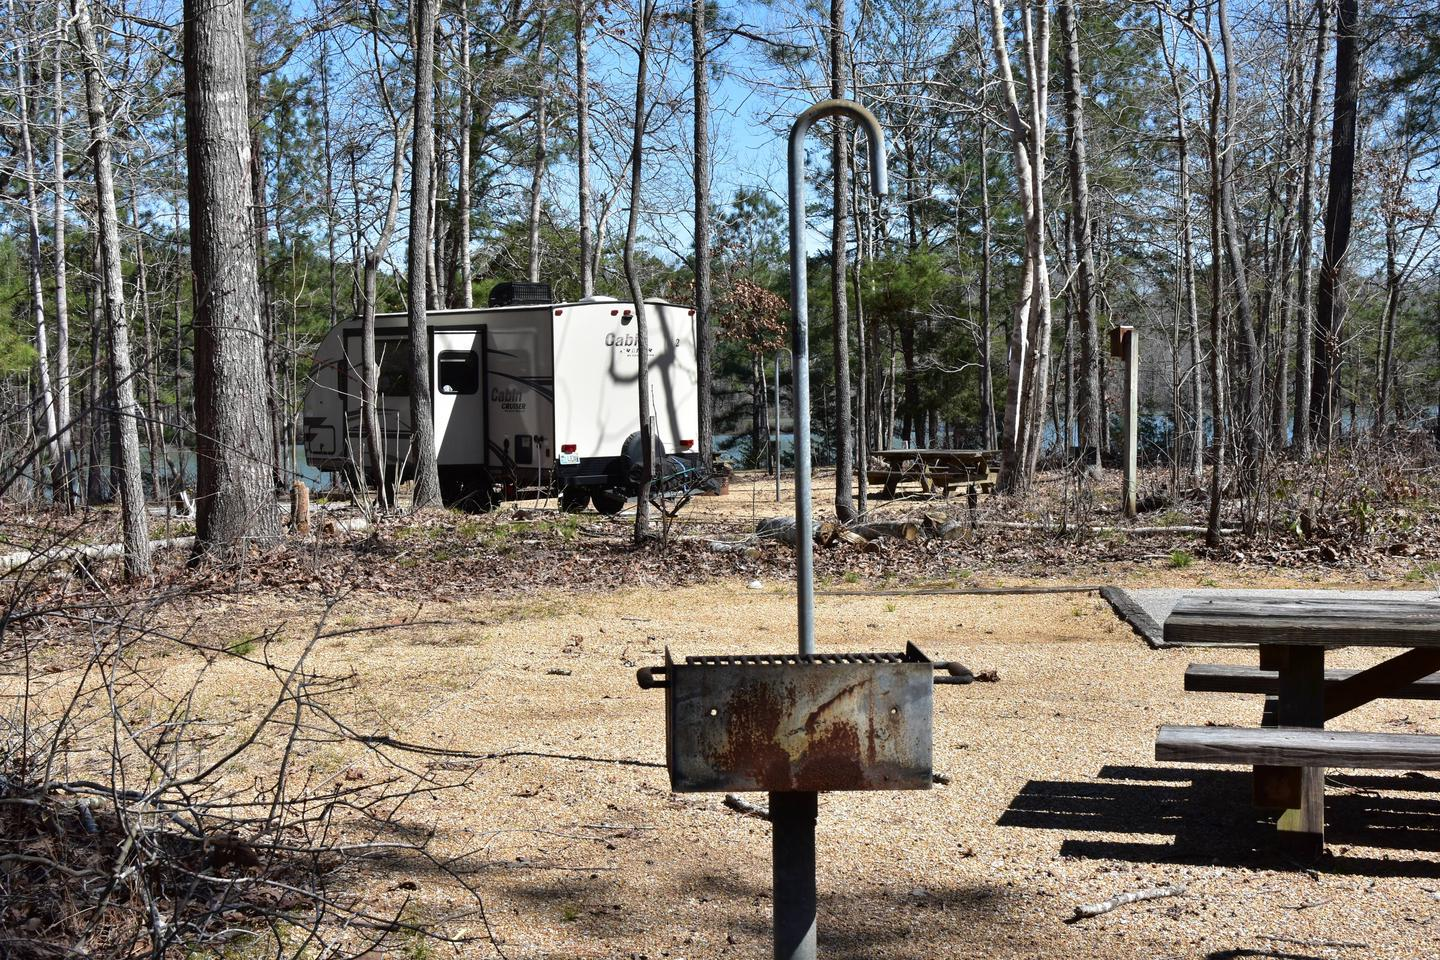 Hoot Owl Site 44-3Hoot Owl Site 44, March 6, 2020